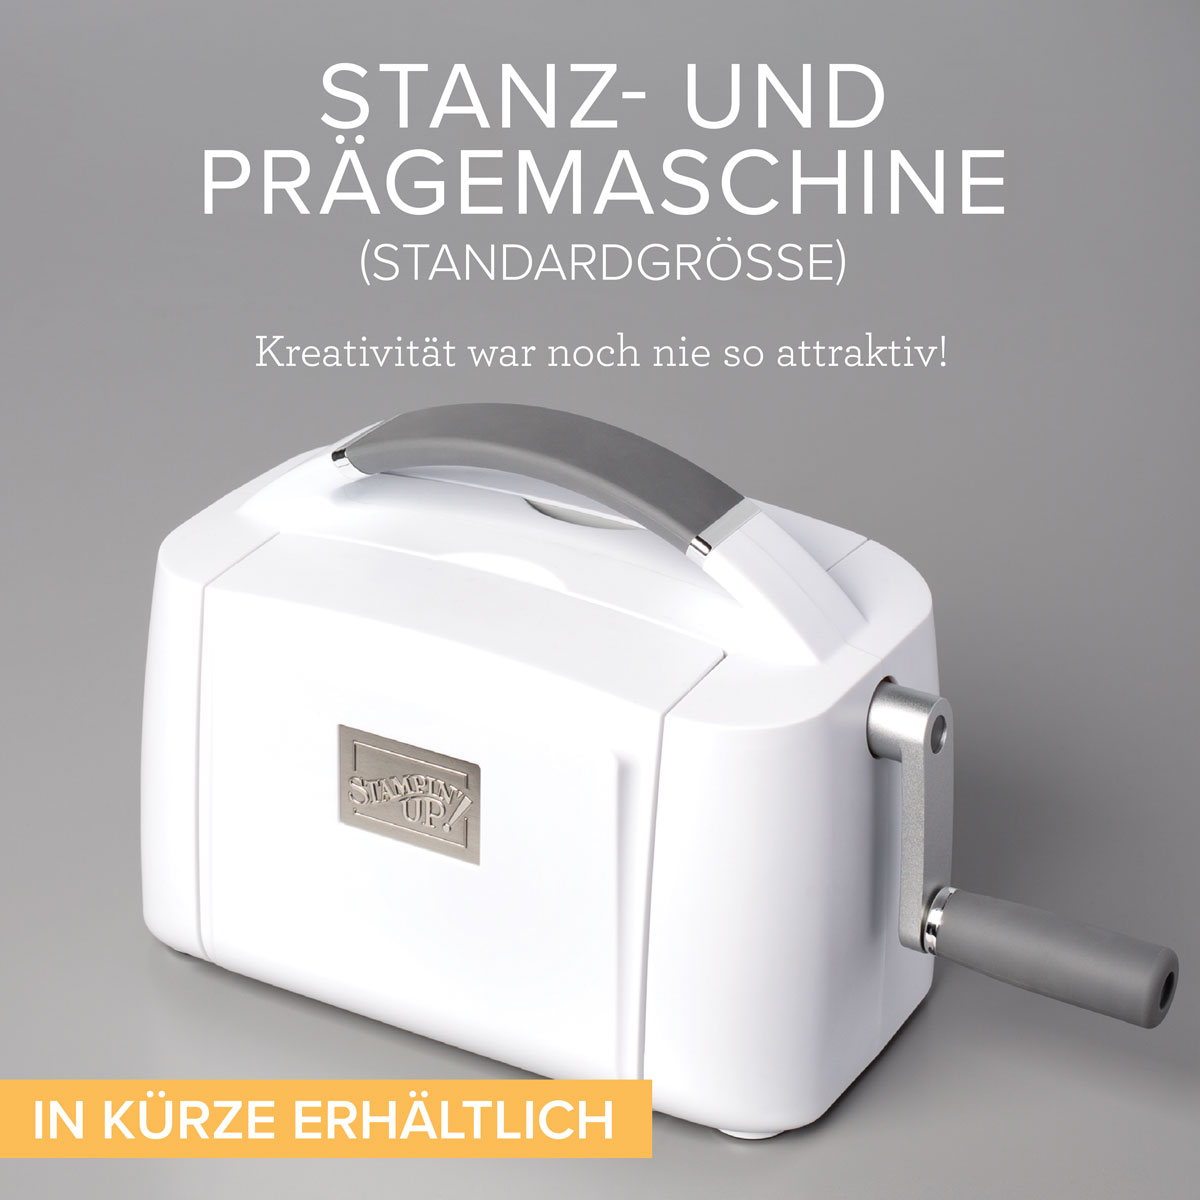 https://su-media.s3.amazonaws.com/media/Promotions/2020/Stampin%27%20Cut%20%26%20Emboss%20Line/08.04.20_SHAREABLE_CUT%26EMBOSS_MACHINE_PREORDER_DE.jpg